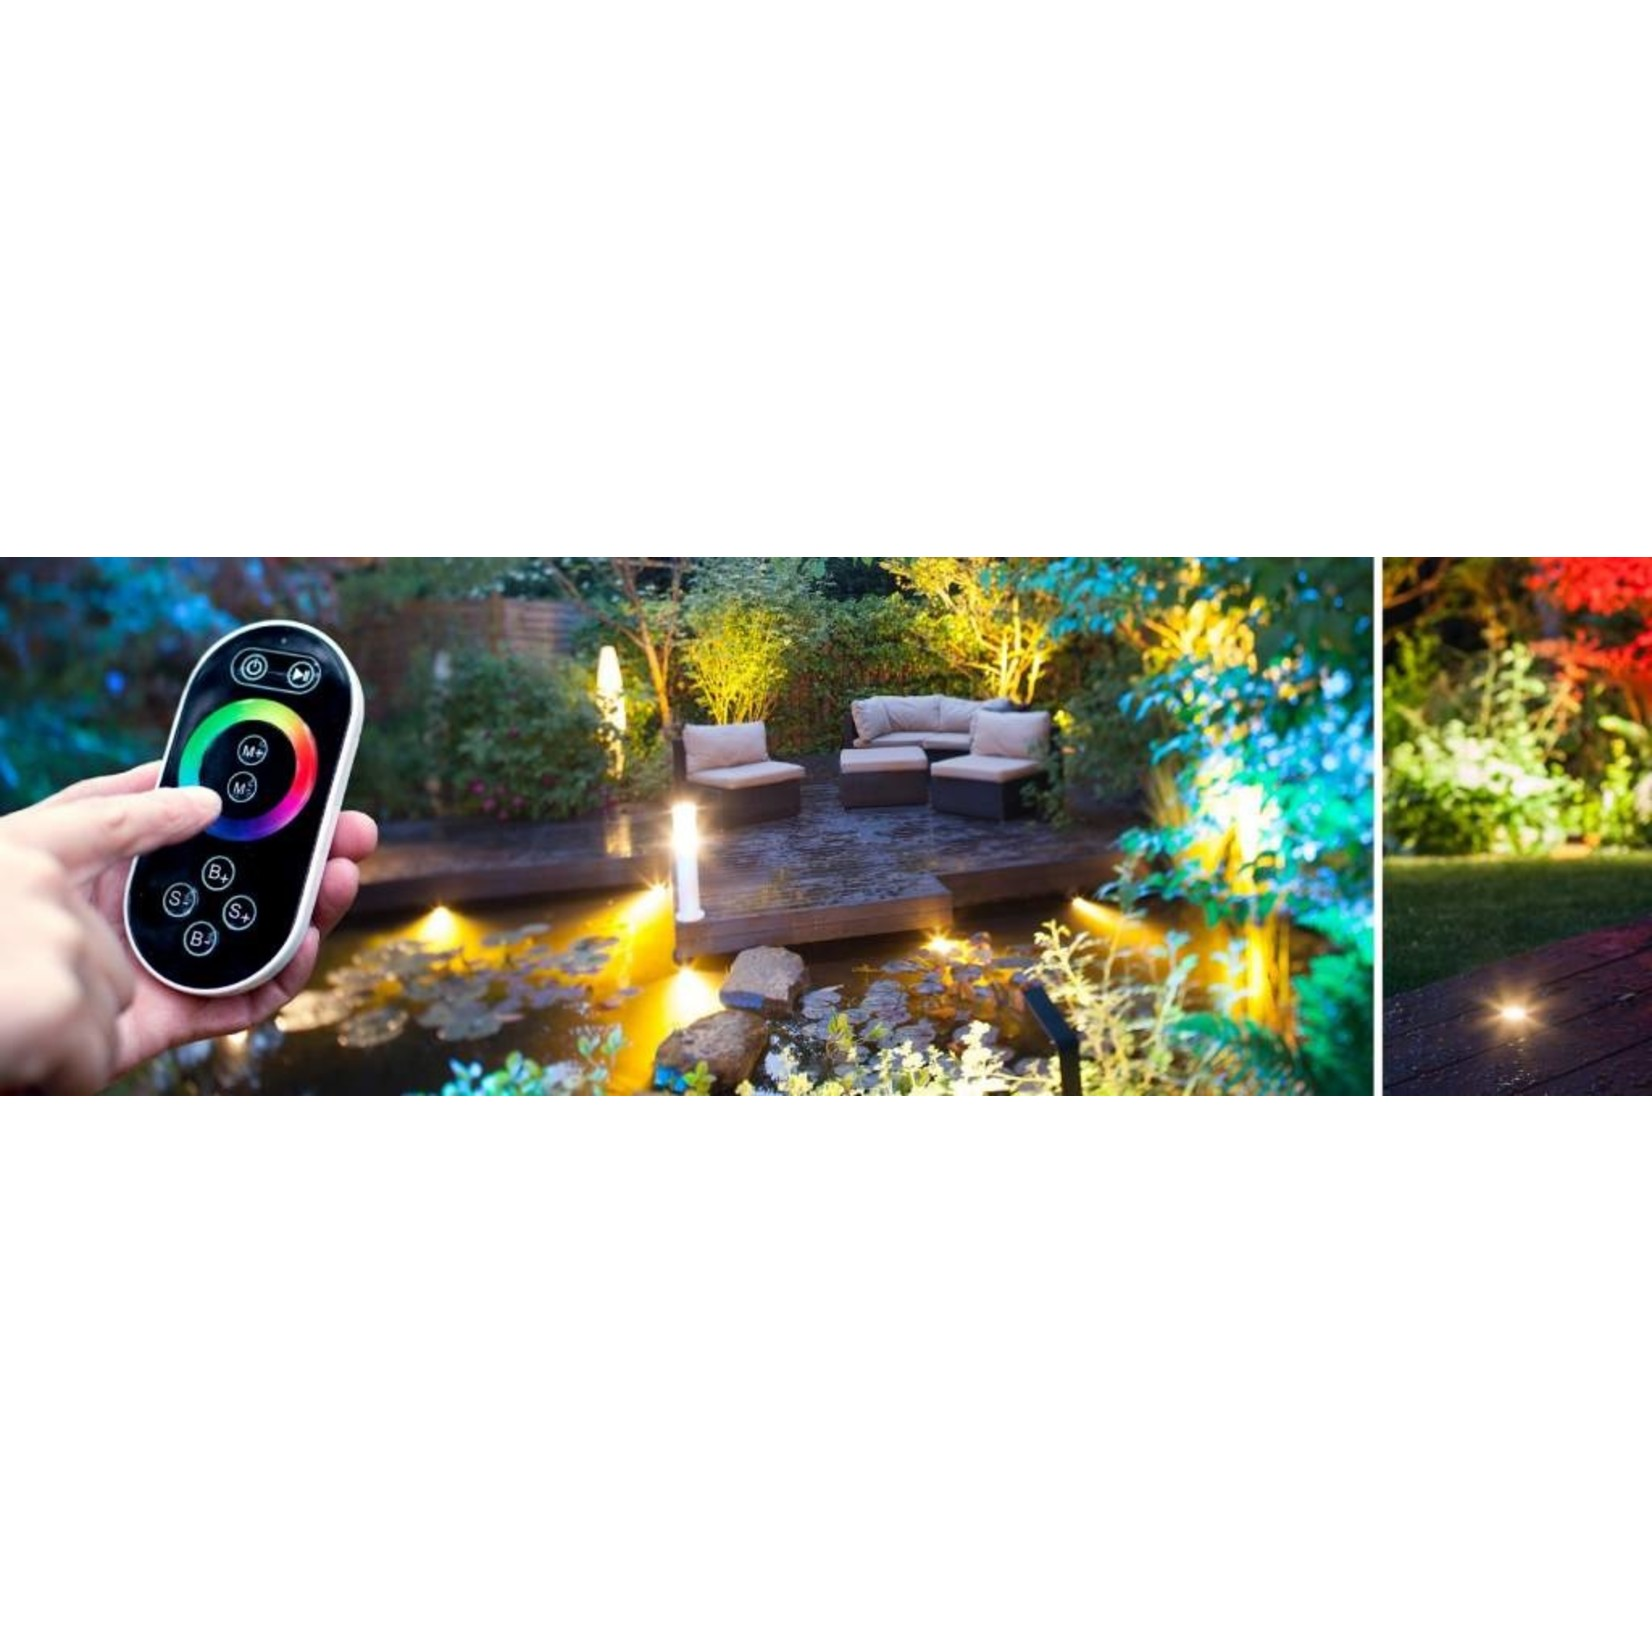 Heissner Smart Light RGB controller met afstandsbediening